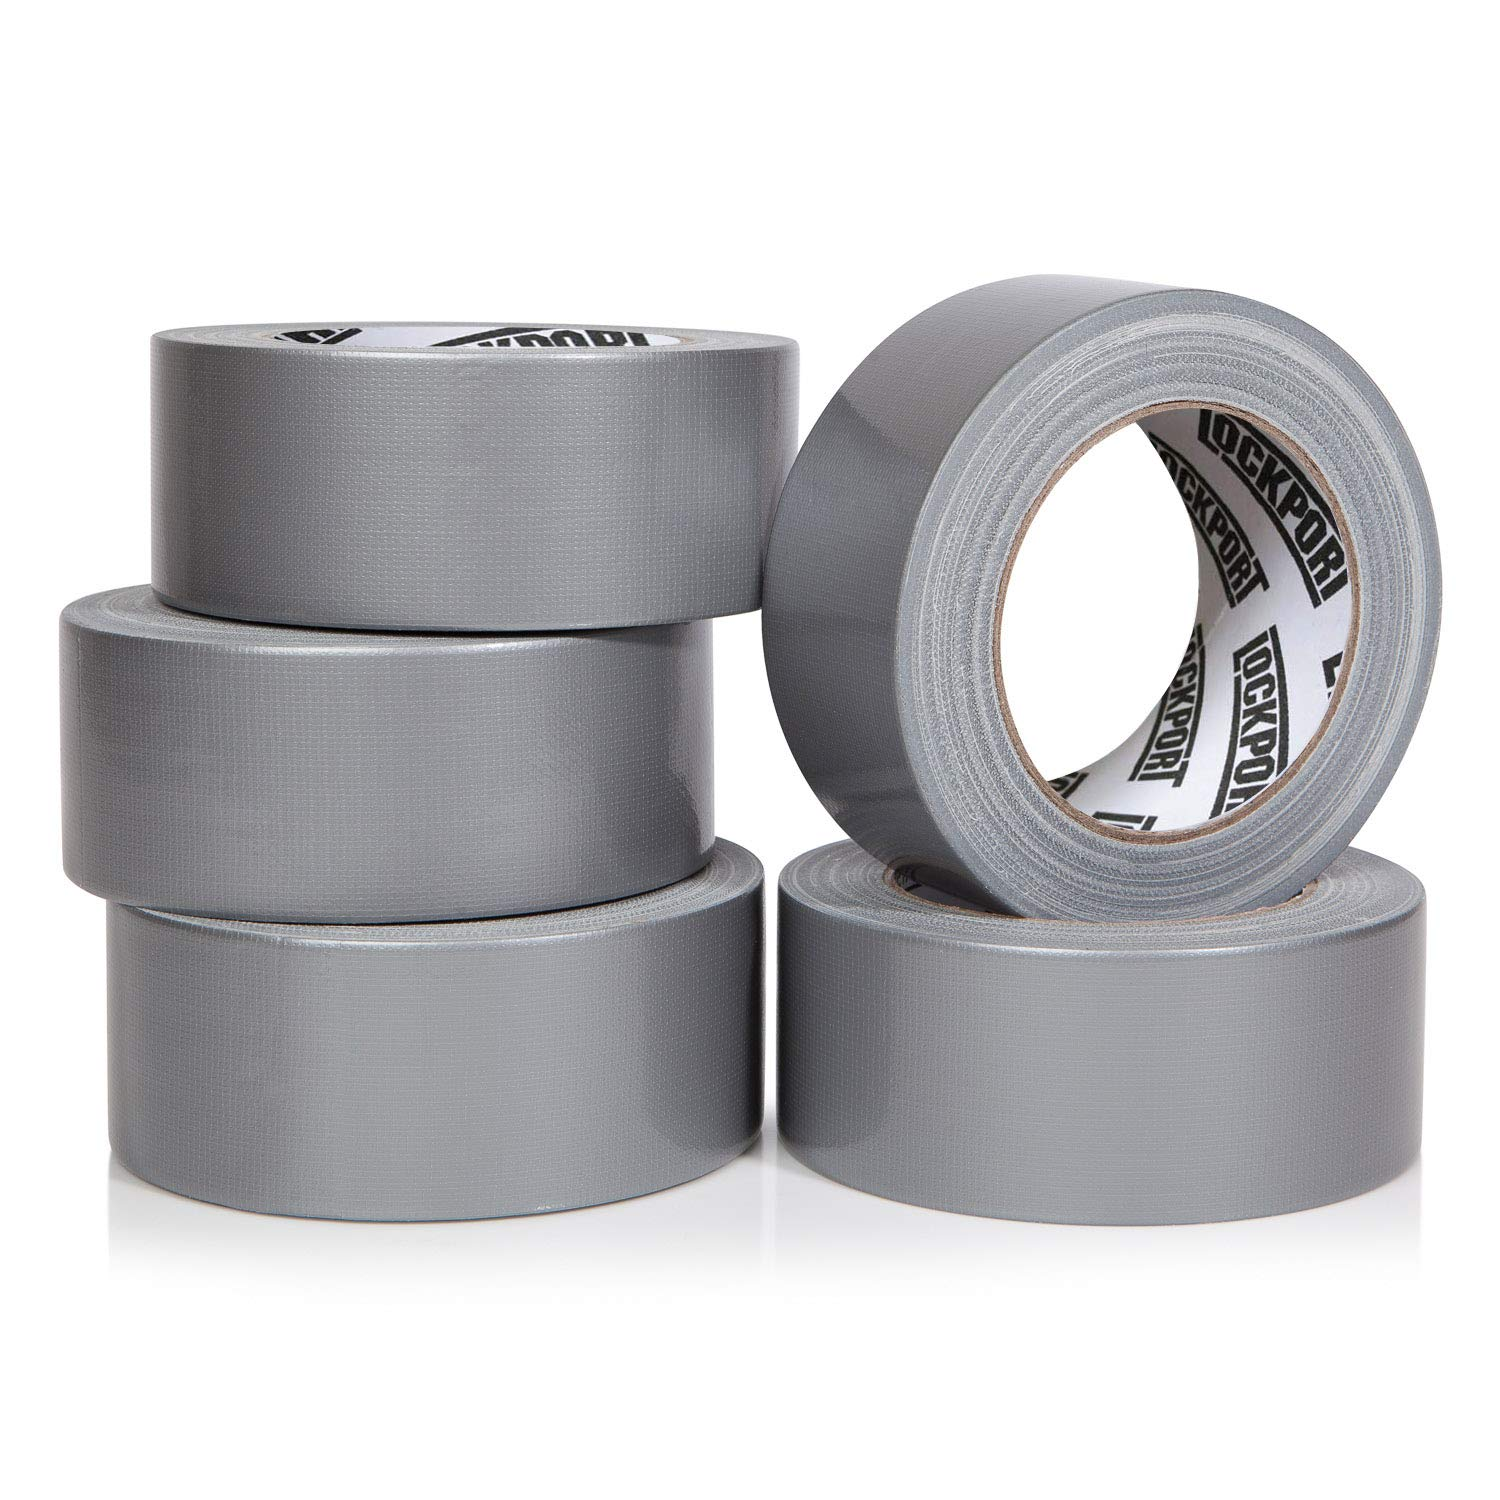 Heavy Duty Silver Duct Tape - 5 Roll Multi Pack Industrial Lot – 30 Yards x 2 inch Wide – Large Bulk Value Pack of Grey Original Extra Strength, No Residue, All Weather. Tear by Hand